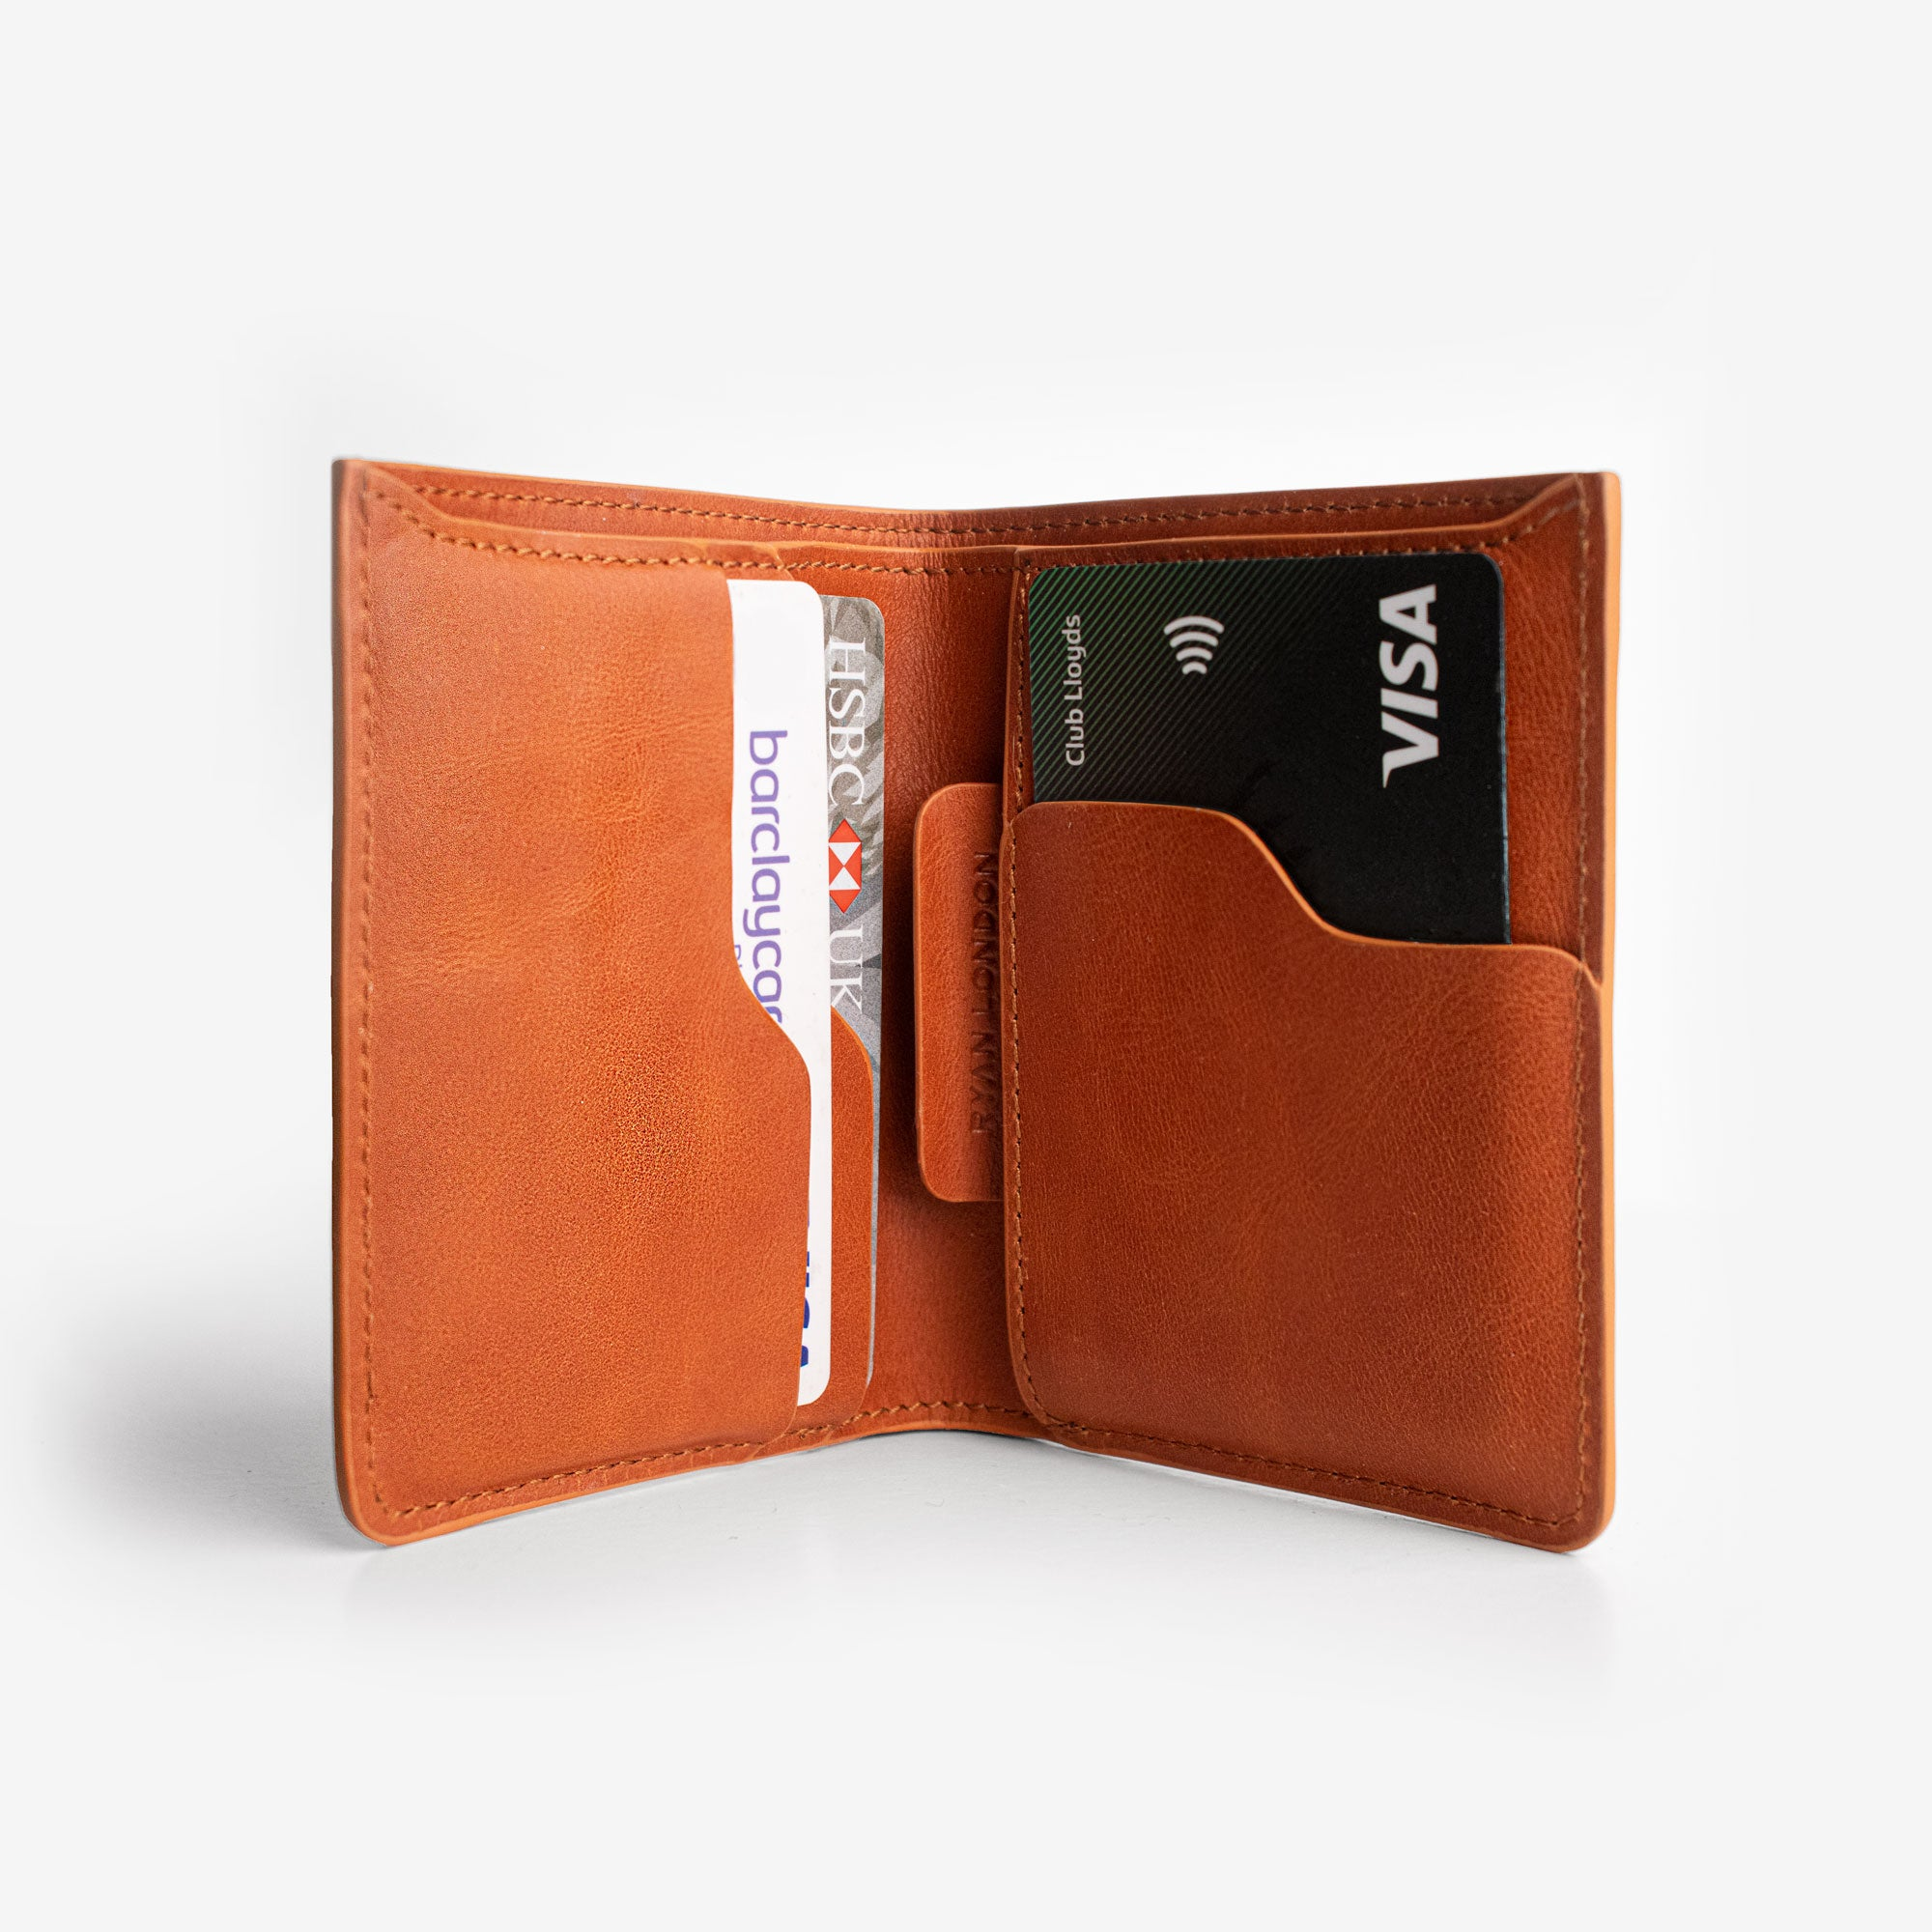 Super Slim Bi-Fold Wallet + iPhone Case - Saddle Brown - RYAN London